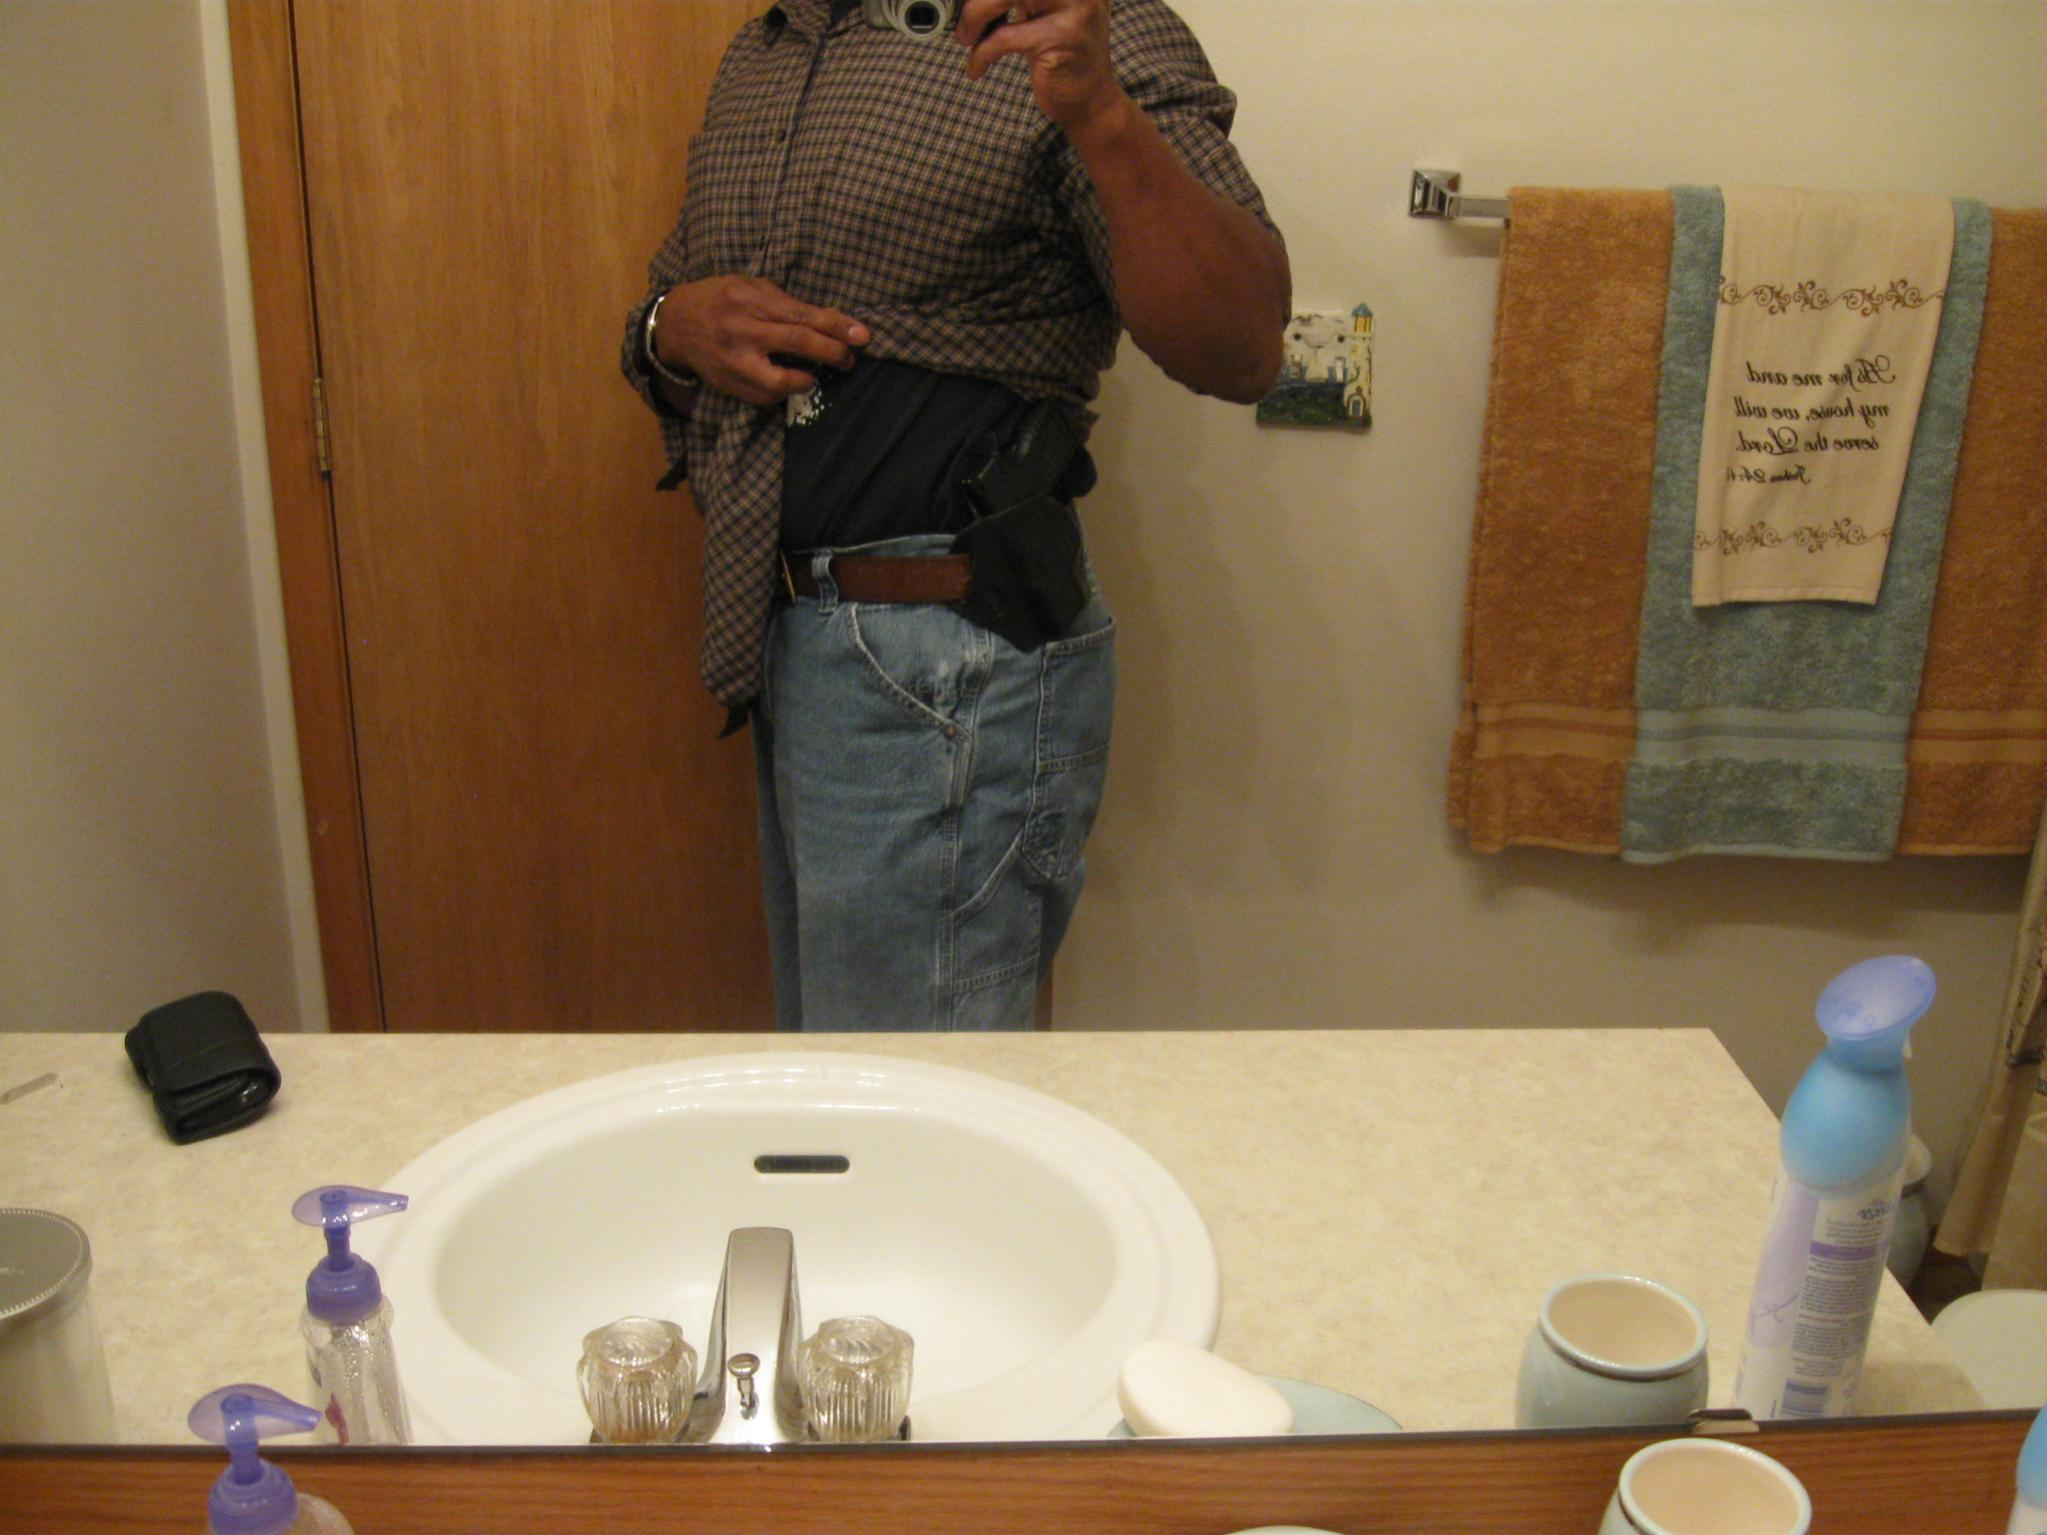 How to make more comfortable for EDC?-owb-holsters-carry-020.jpg